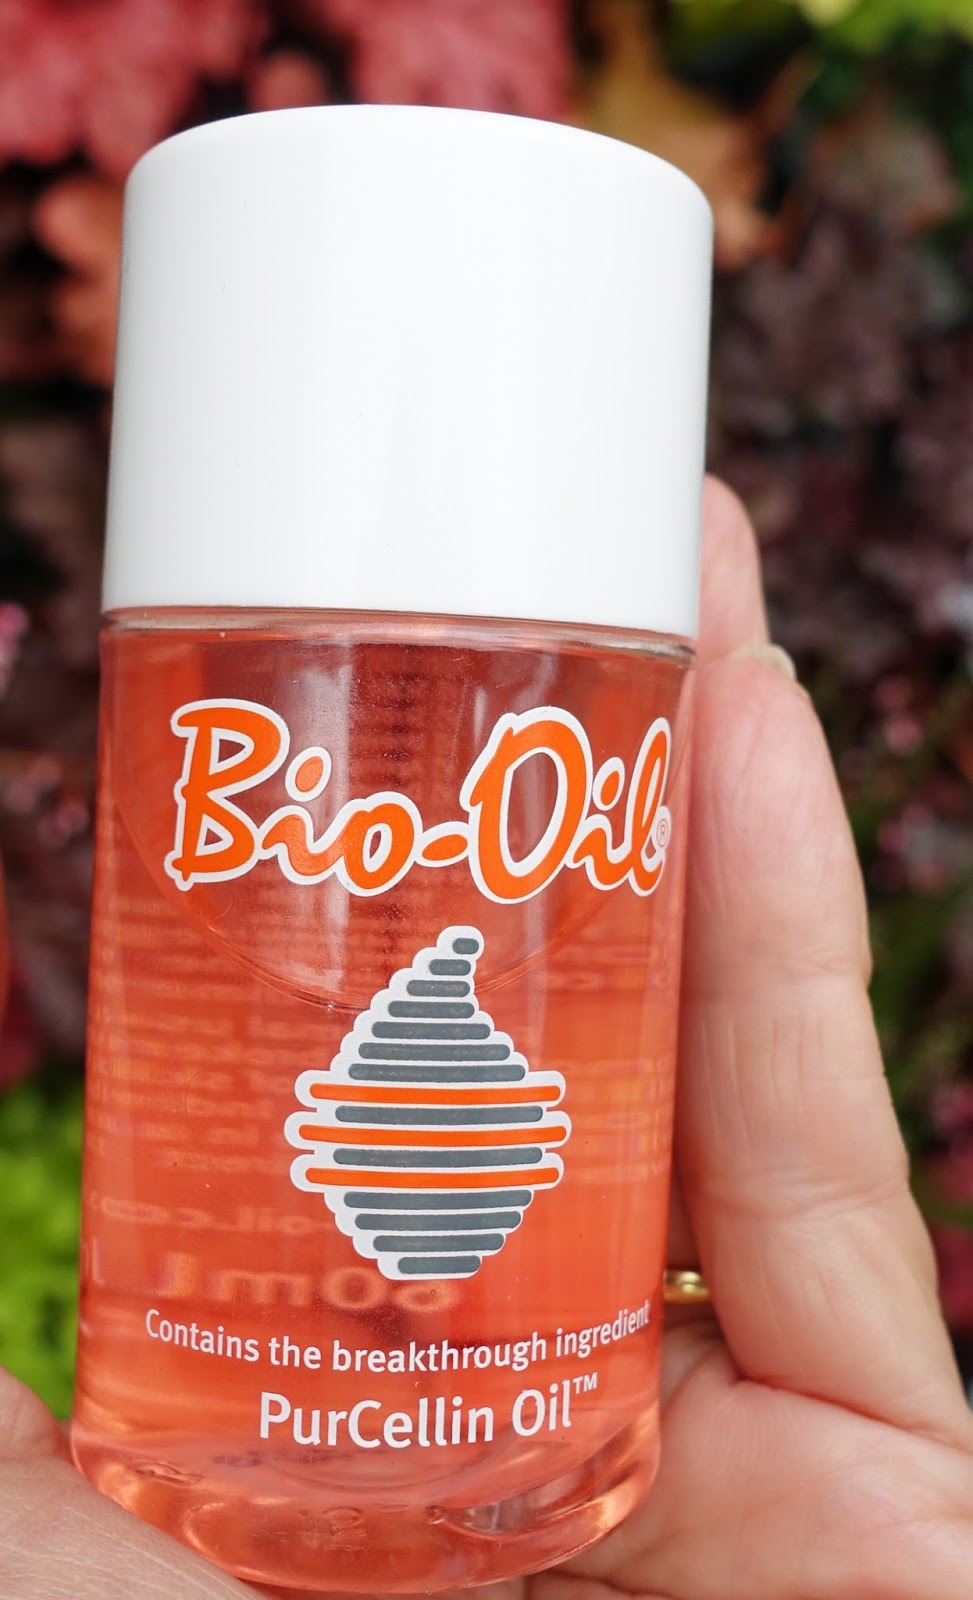 Bio-Oil was a product Is This Mutton? had never tried but in July's review it gets a glowing writeup for improving dehydrated and ageing skin